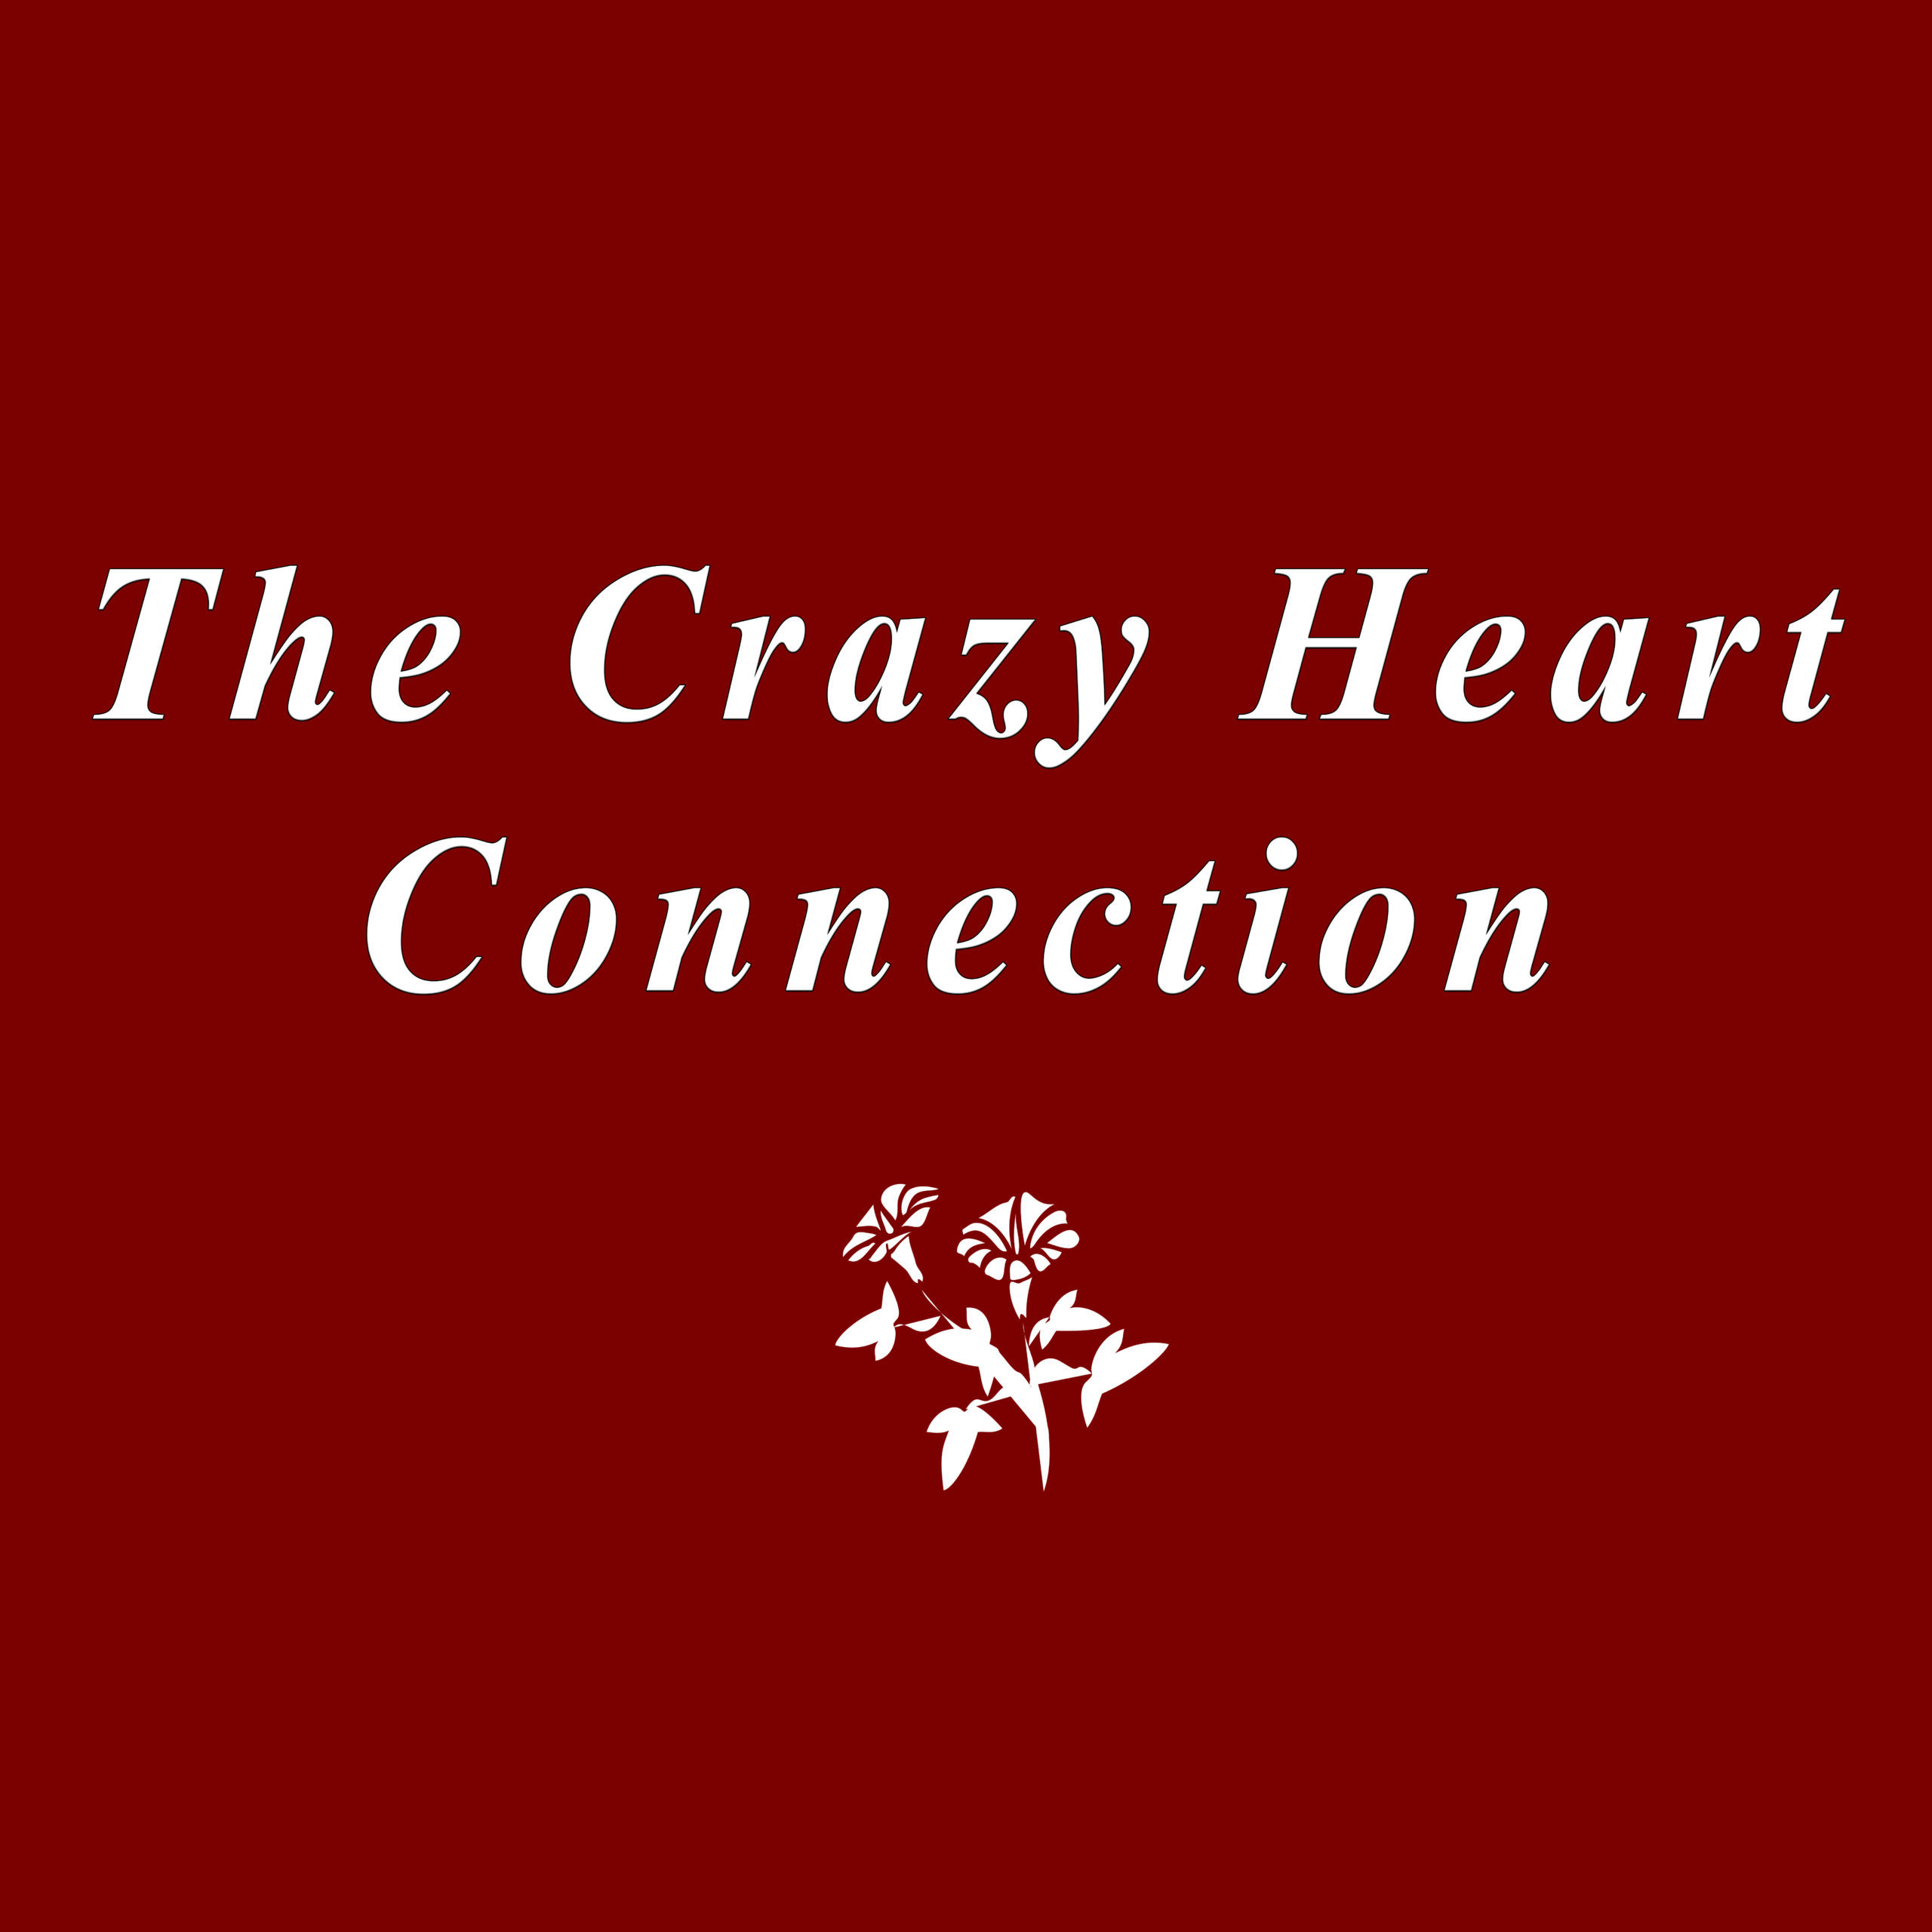 The Crazy Heart Connection